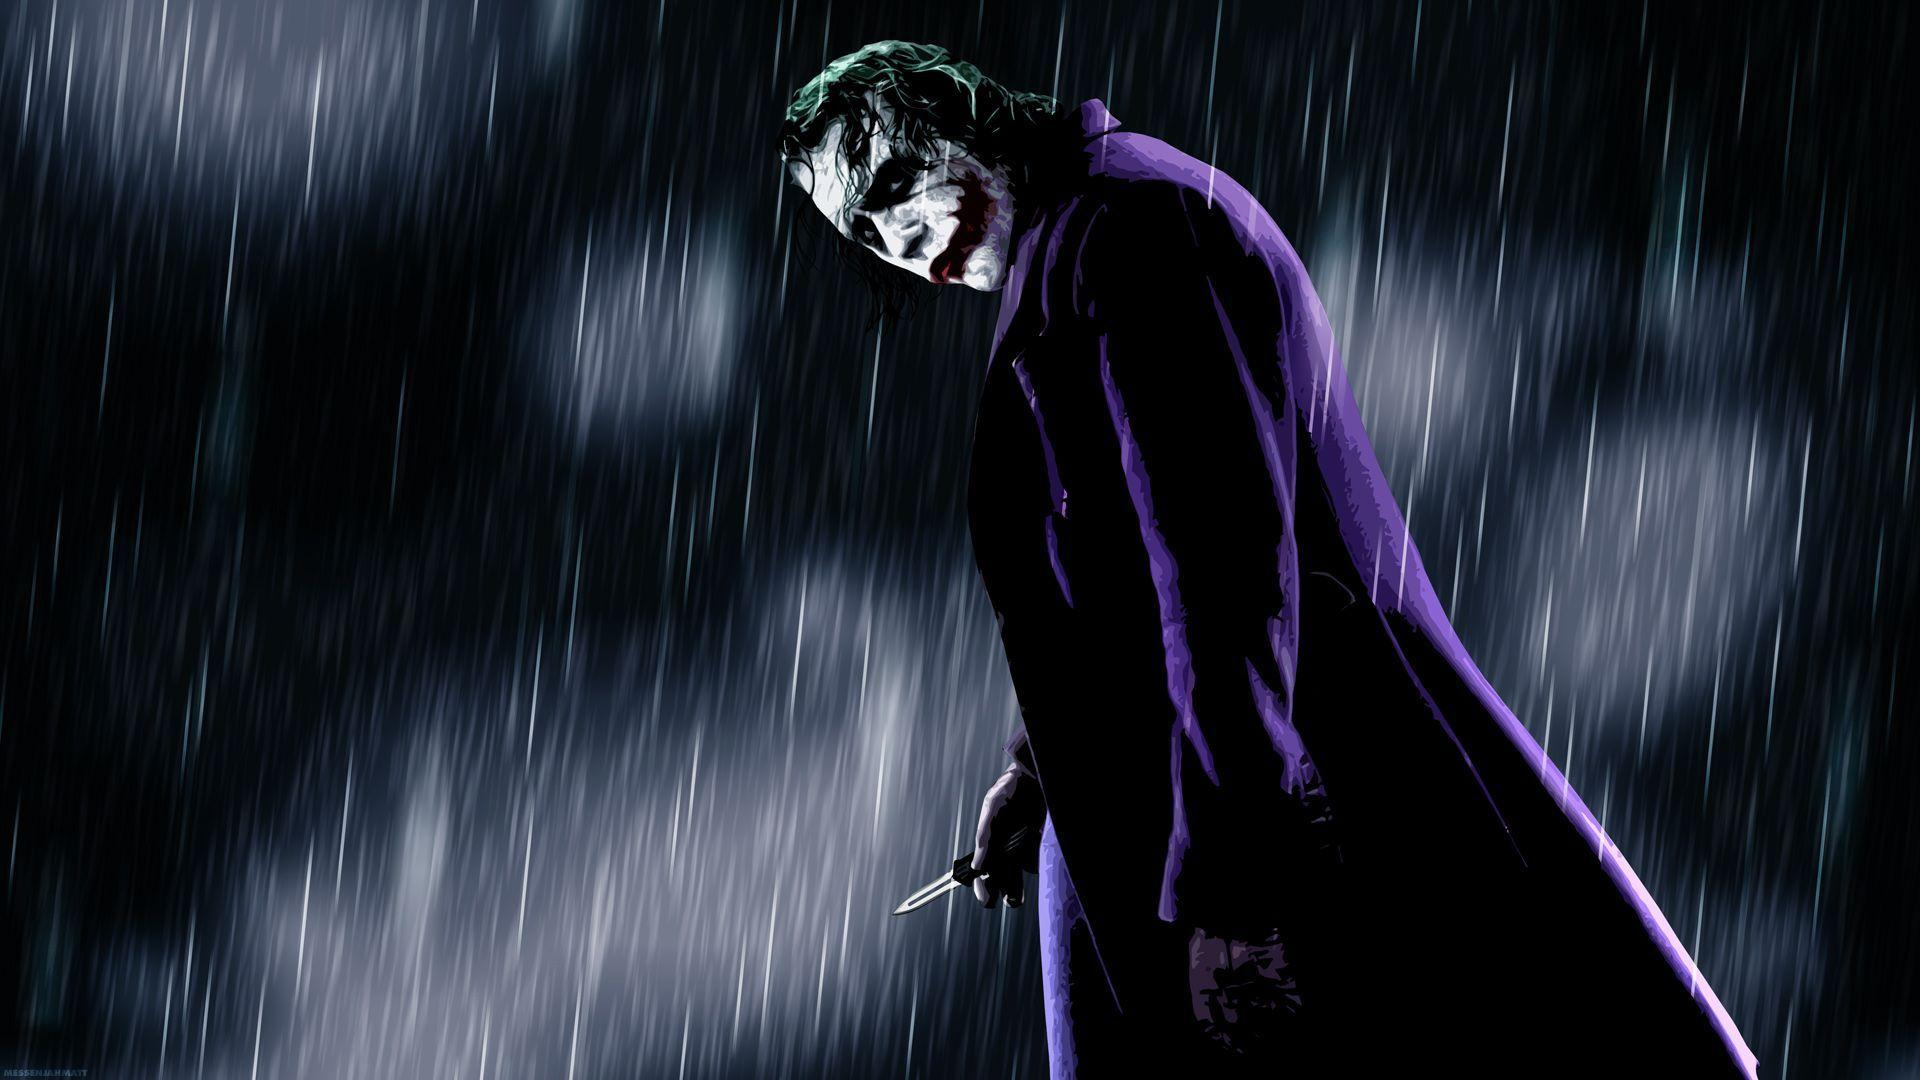 The Dark Knight Joker Wallpapers 1920x1080